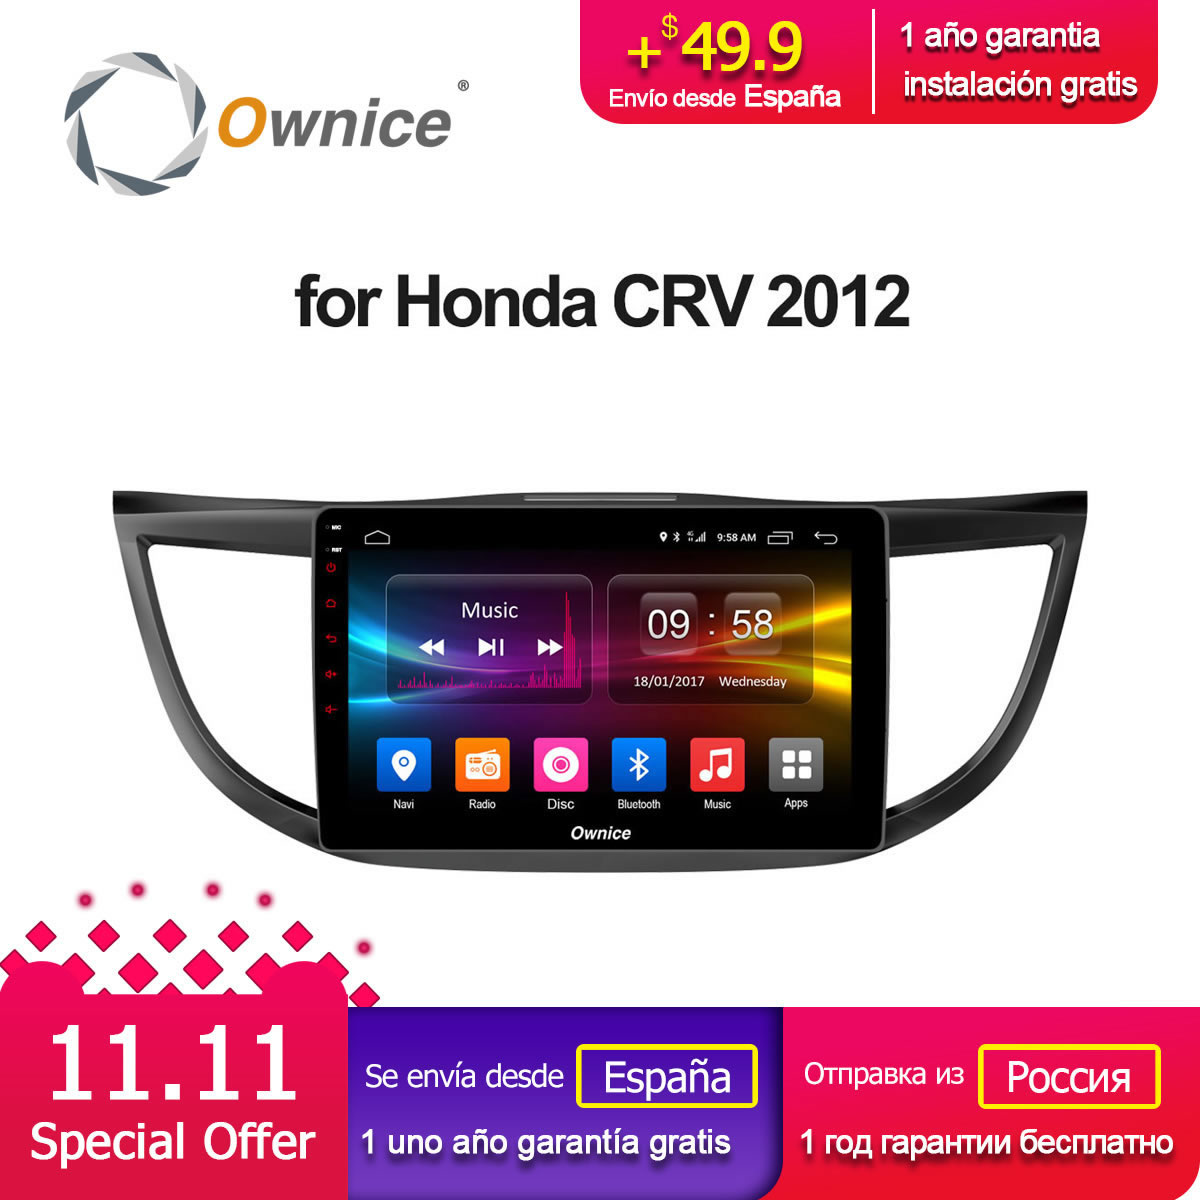 Ownice C500+ G10 Octa Core Android 8.1 For Honda CRV 2012 2013 2014 2015 2016 Car Radio Player Navi GPS 2GB RAM Support DVD 4G ownice c500 4g sim lte octa 8 core android 6 0 for kia ceed 2013 2015 car dvd player gps navi radio wifi 4g bt 2gb ram 32g rom